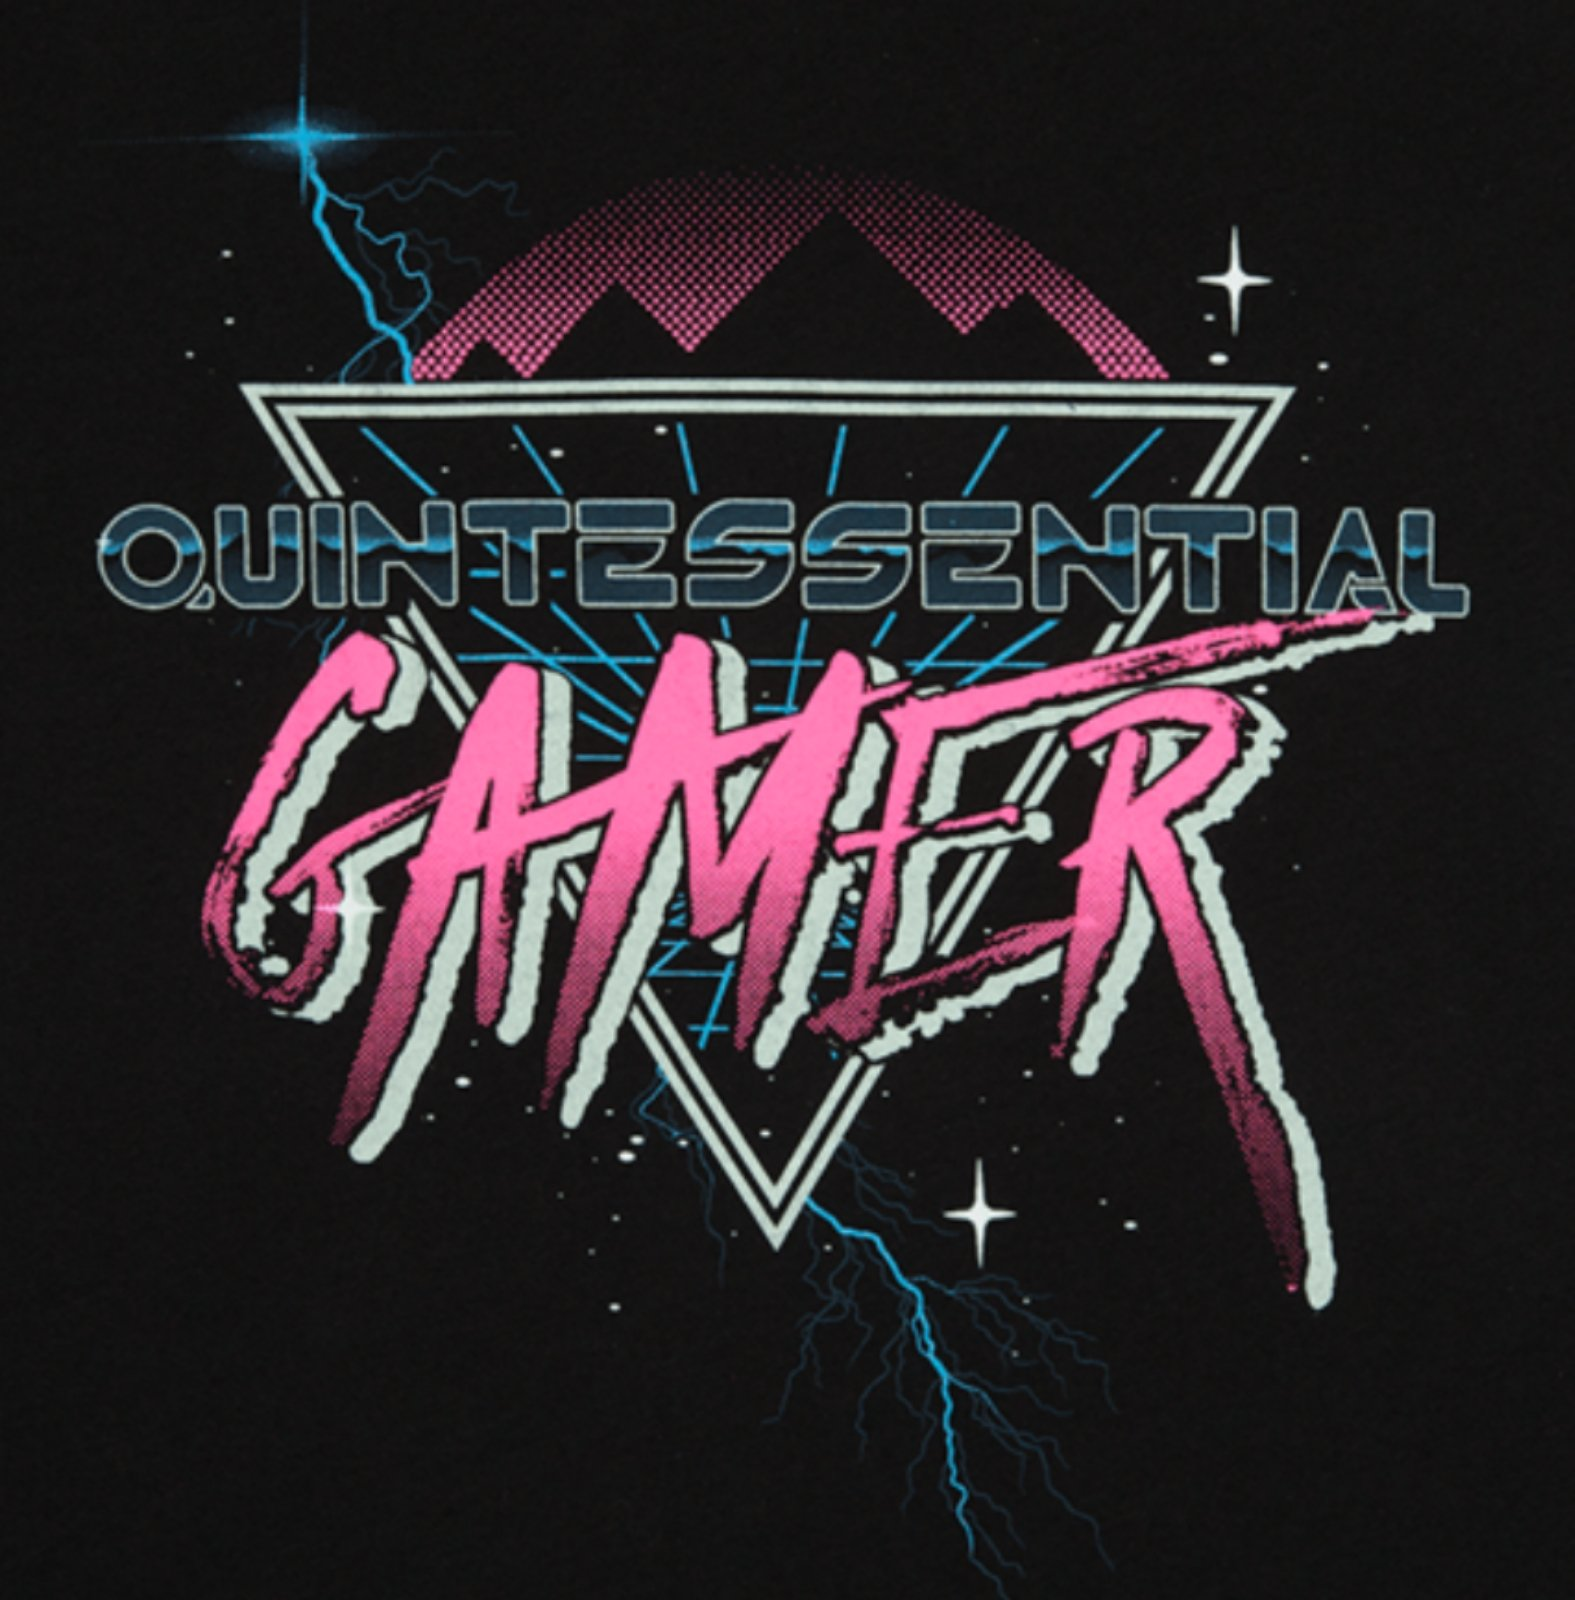 Lawrence Sonntag On Twitter Today S The Day You Can Be As Cool And Insufferably Good At Video Games As I Am Quintessential Gamers Unite Listen to the best lawrence sonntag shows. quintessential gamers unite